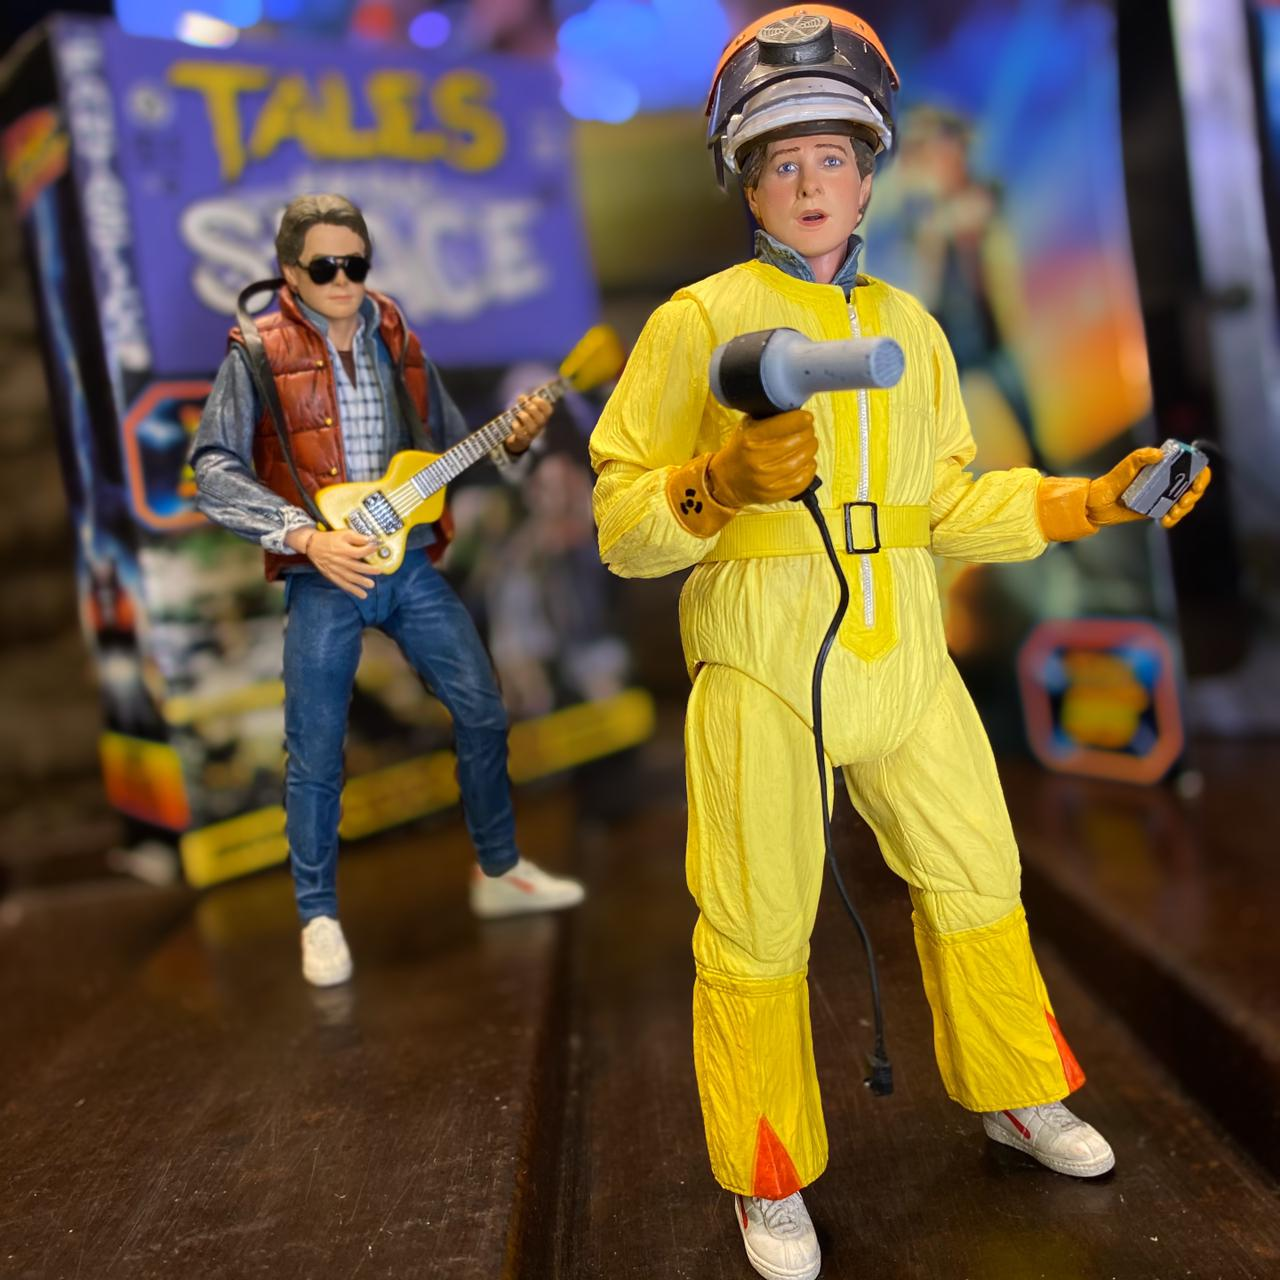 Action Figure Marty Mcfly: De Volta Para o Futuro ''Back To The Future'' Ultimate Tales From Space - NECA